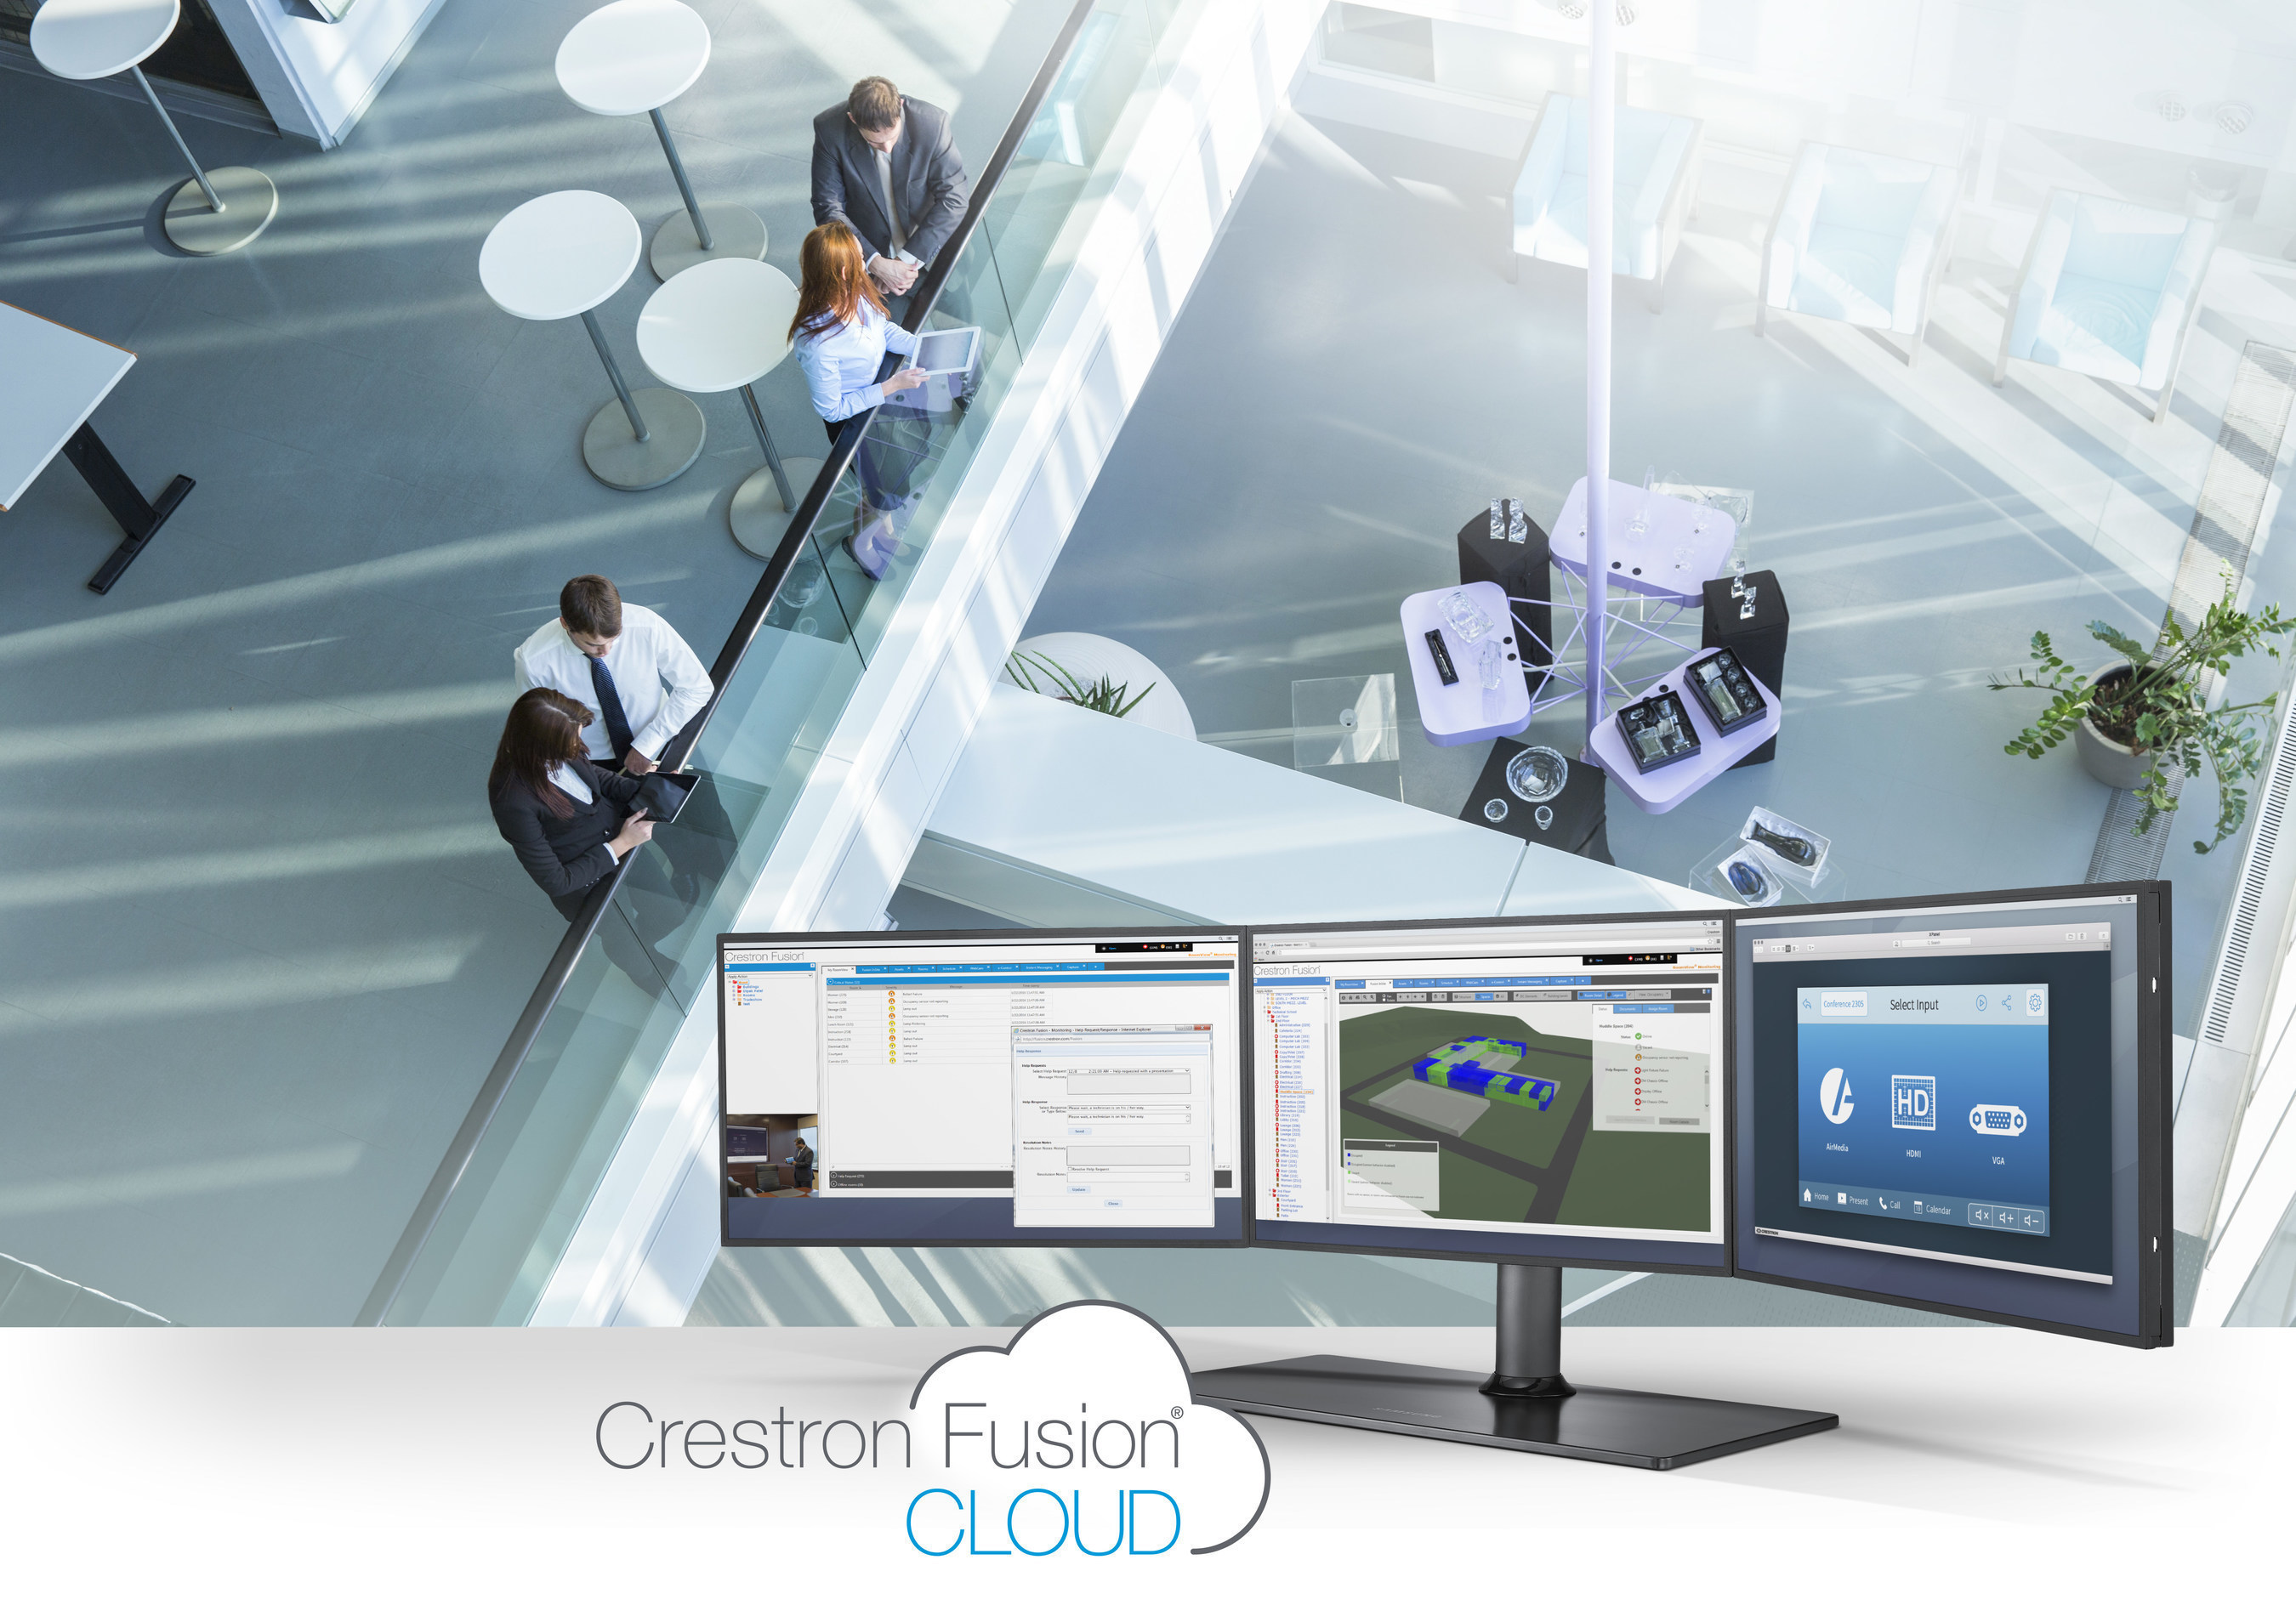 Unproductive meetings have been estimated to cost U.S. organizations $37 billion annually. Crestron's new PinPoint(TM) mobile app and Fusion(R) Cloud enterprise management platform help companies optimize the return on their biggest investments--their people, places, and technology.